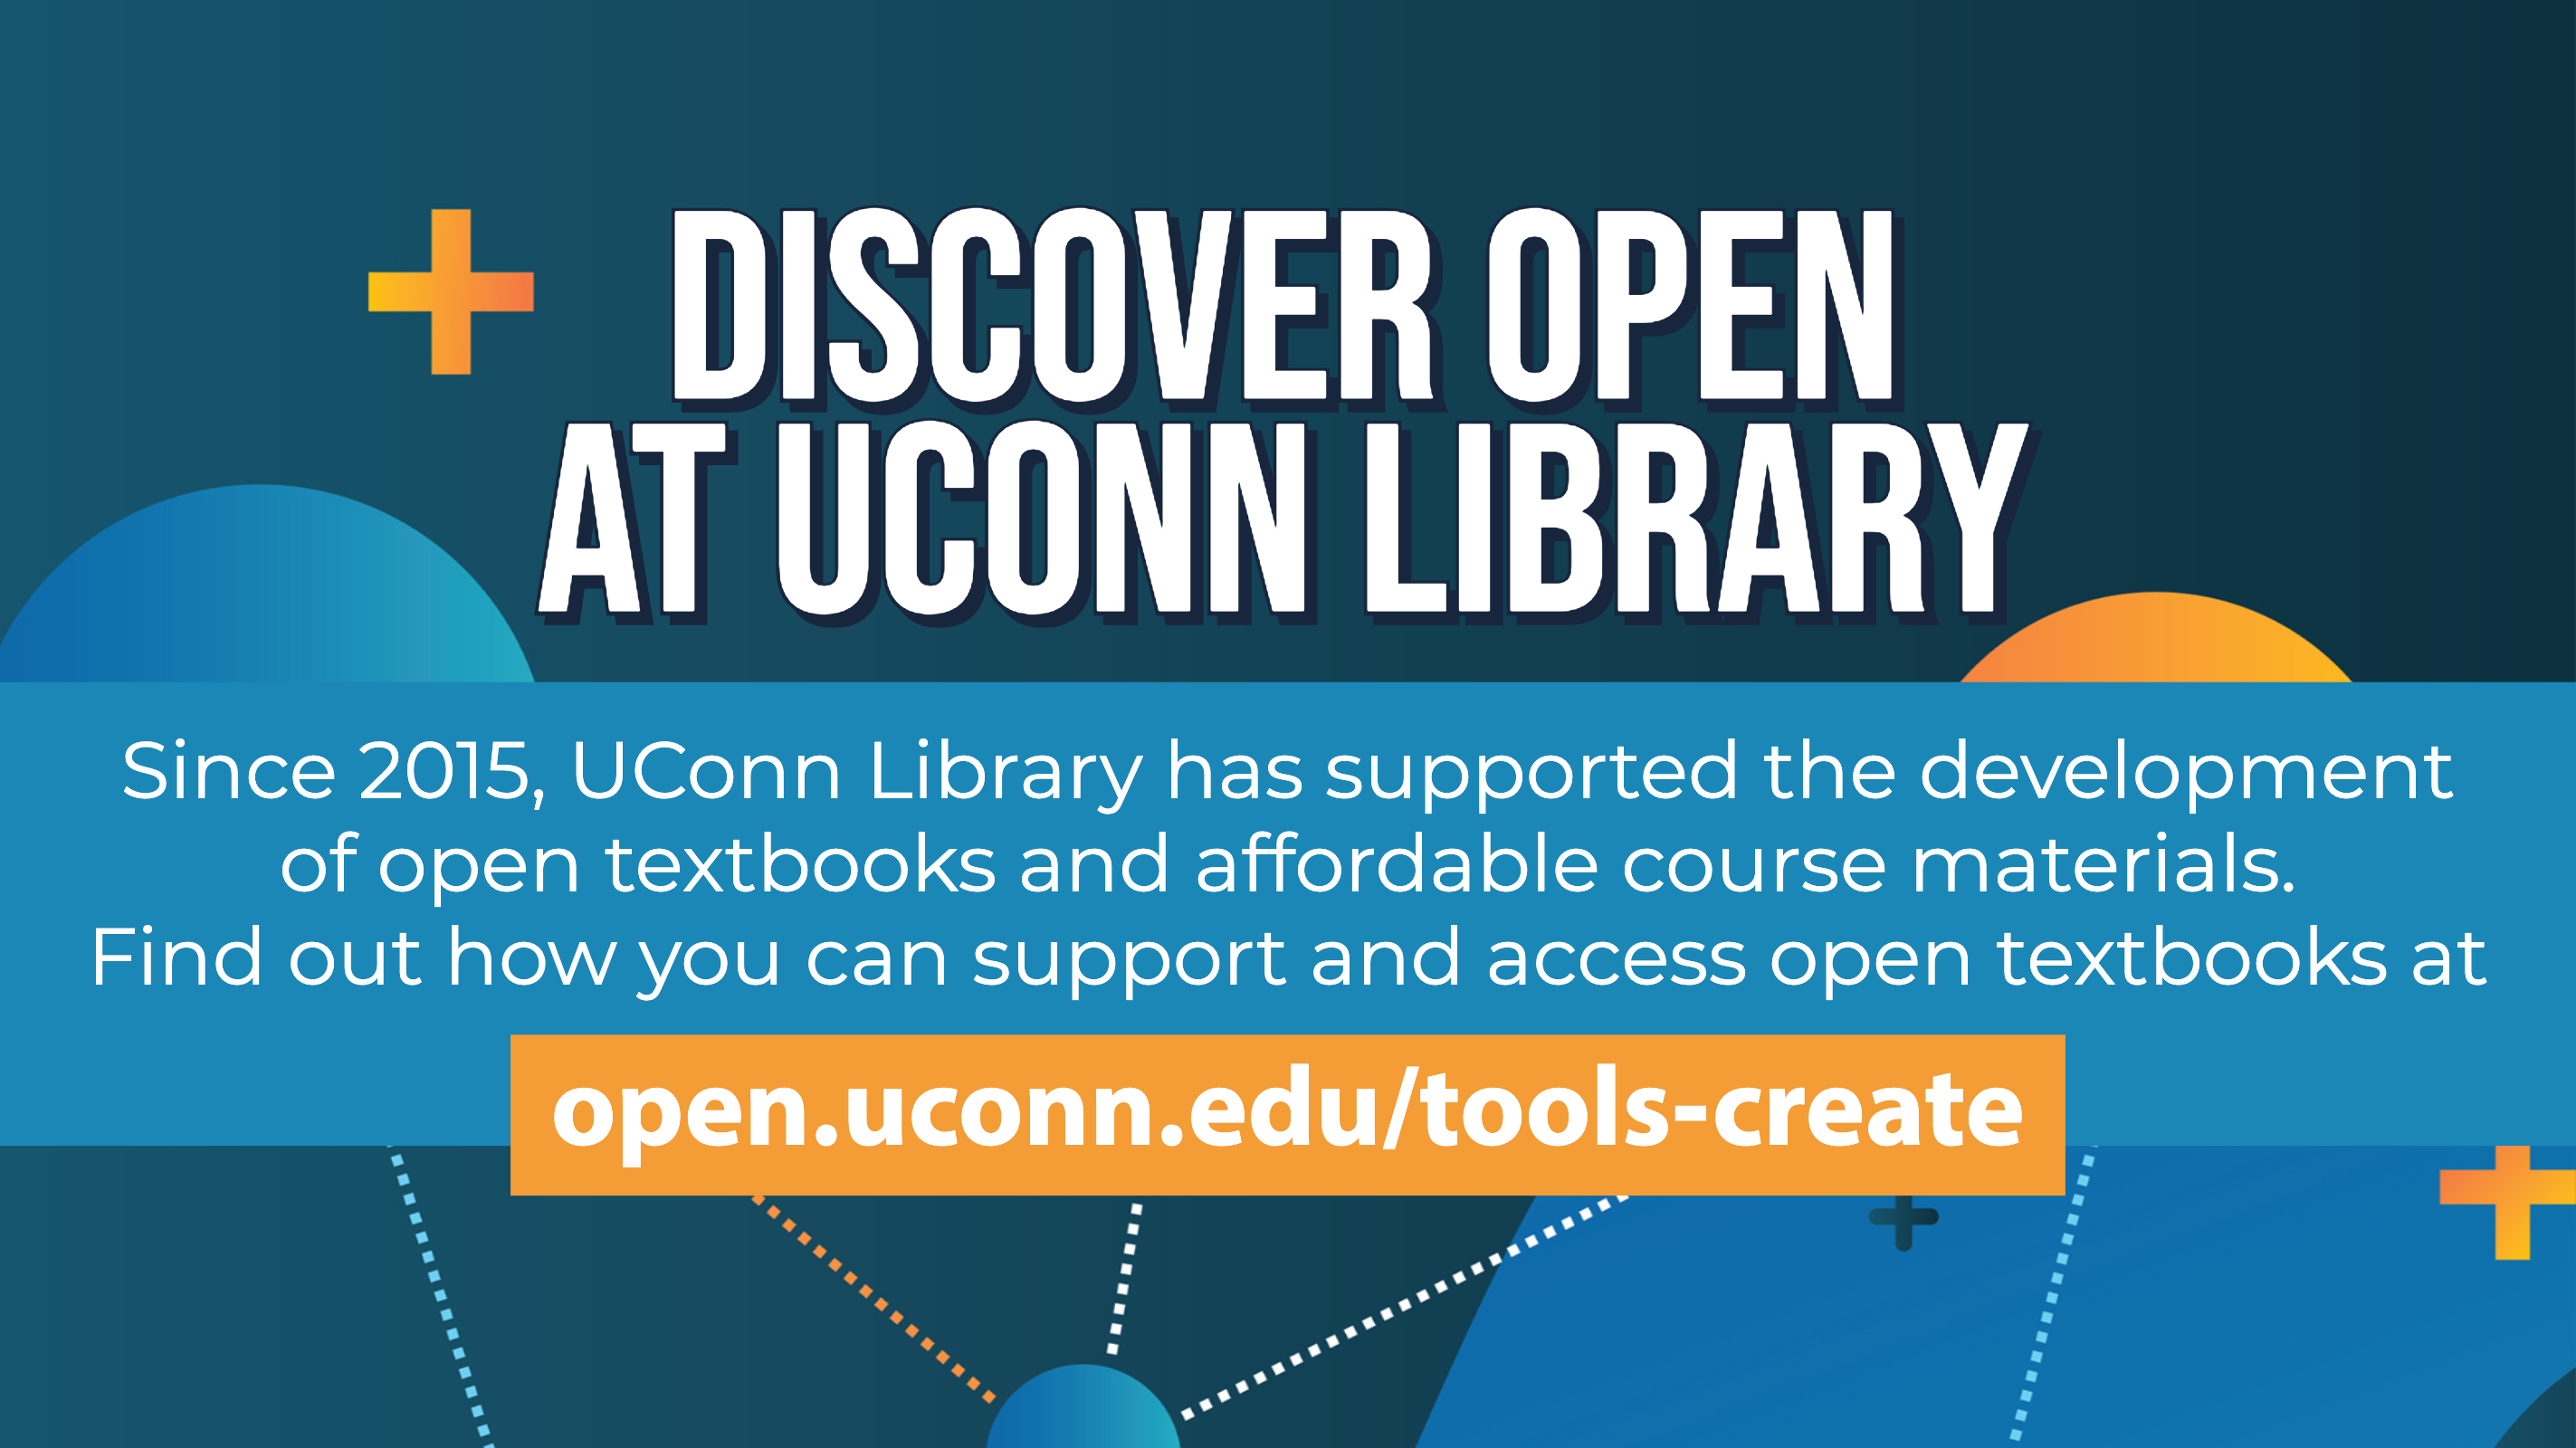 Discover Open at UConn Library Since 2015, UConn Library has supported the development of open textbooks and affordable course materials. Find out how you can support and access open textbooks at open.uconn.edu/tools-create